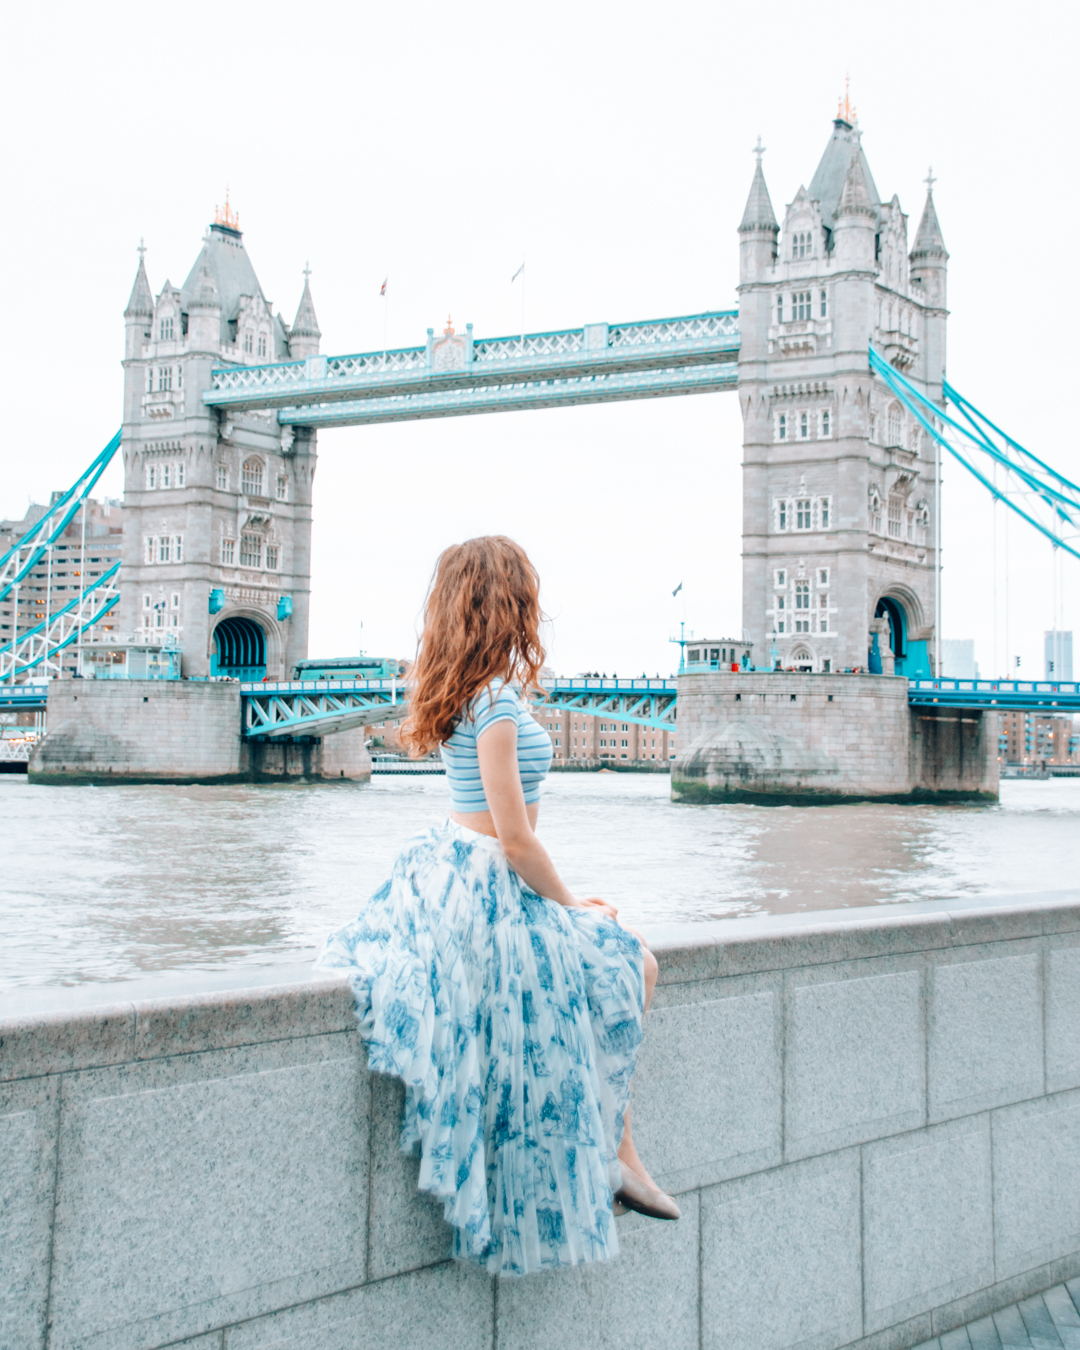 Girl with large skirt looking at Tower Bridge